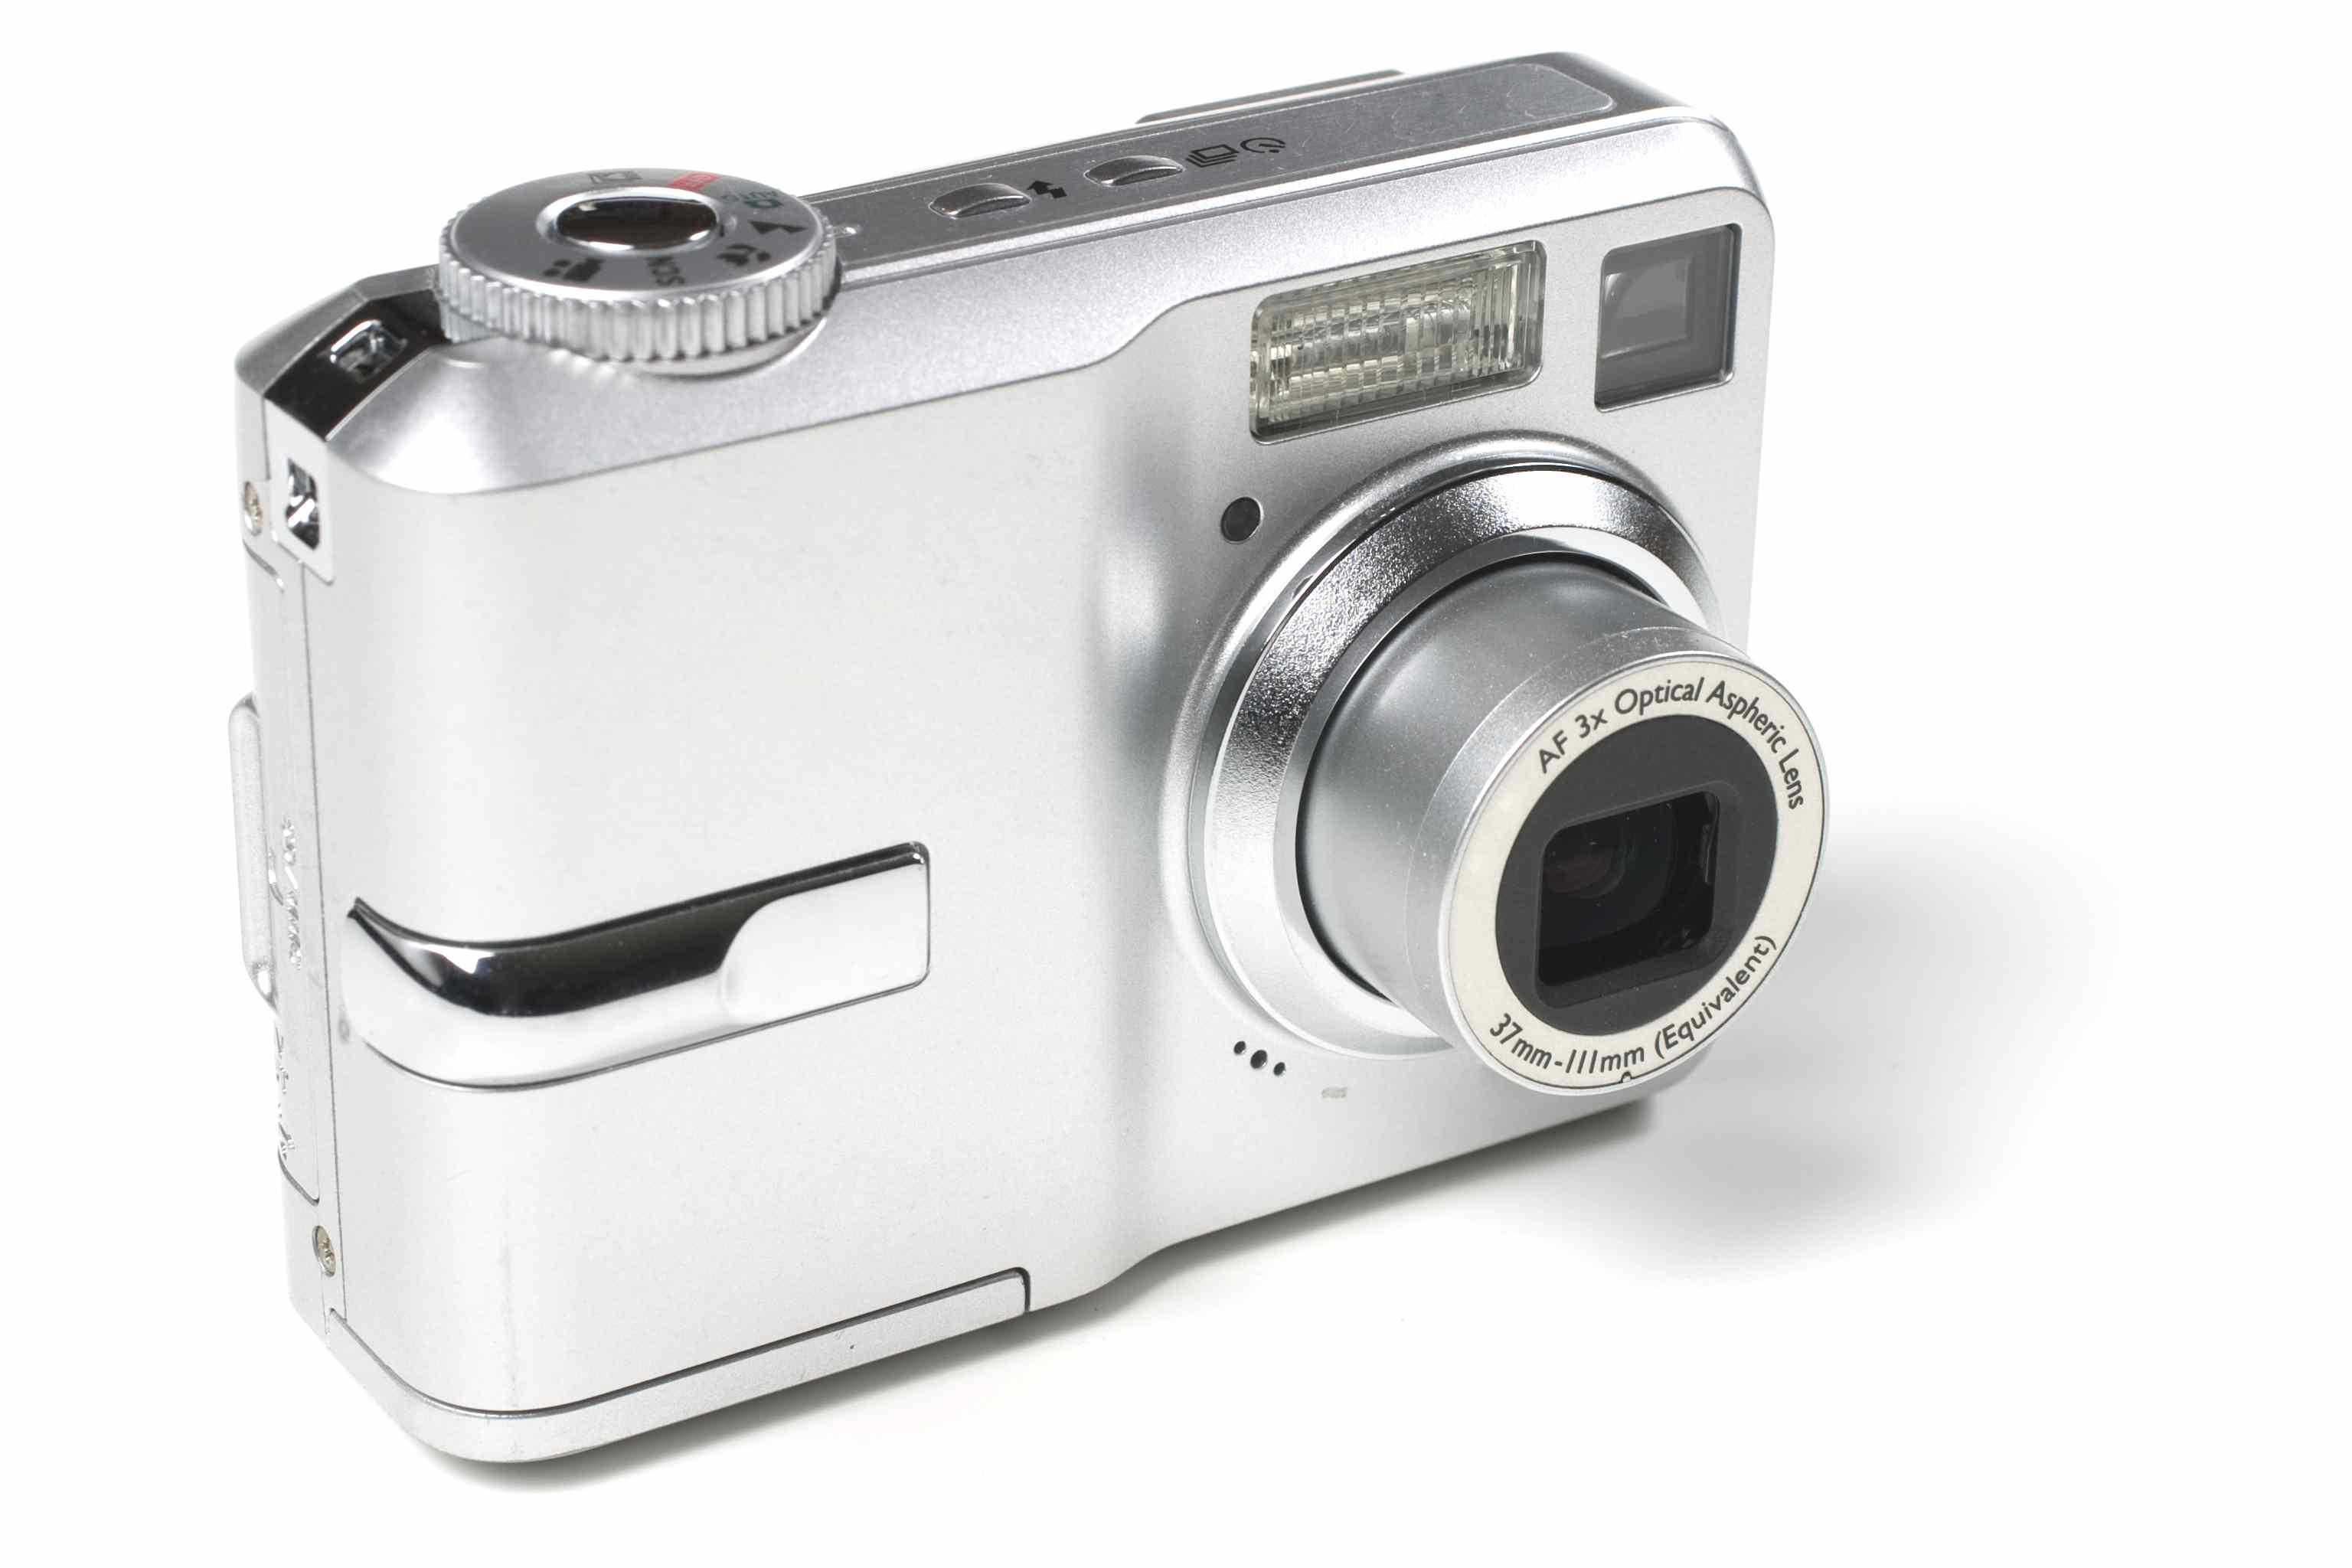 A point and shoot camera.